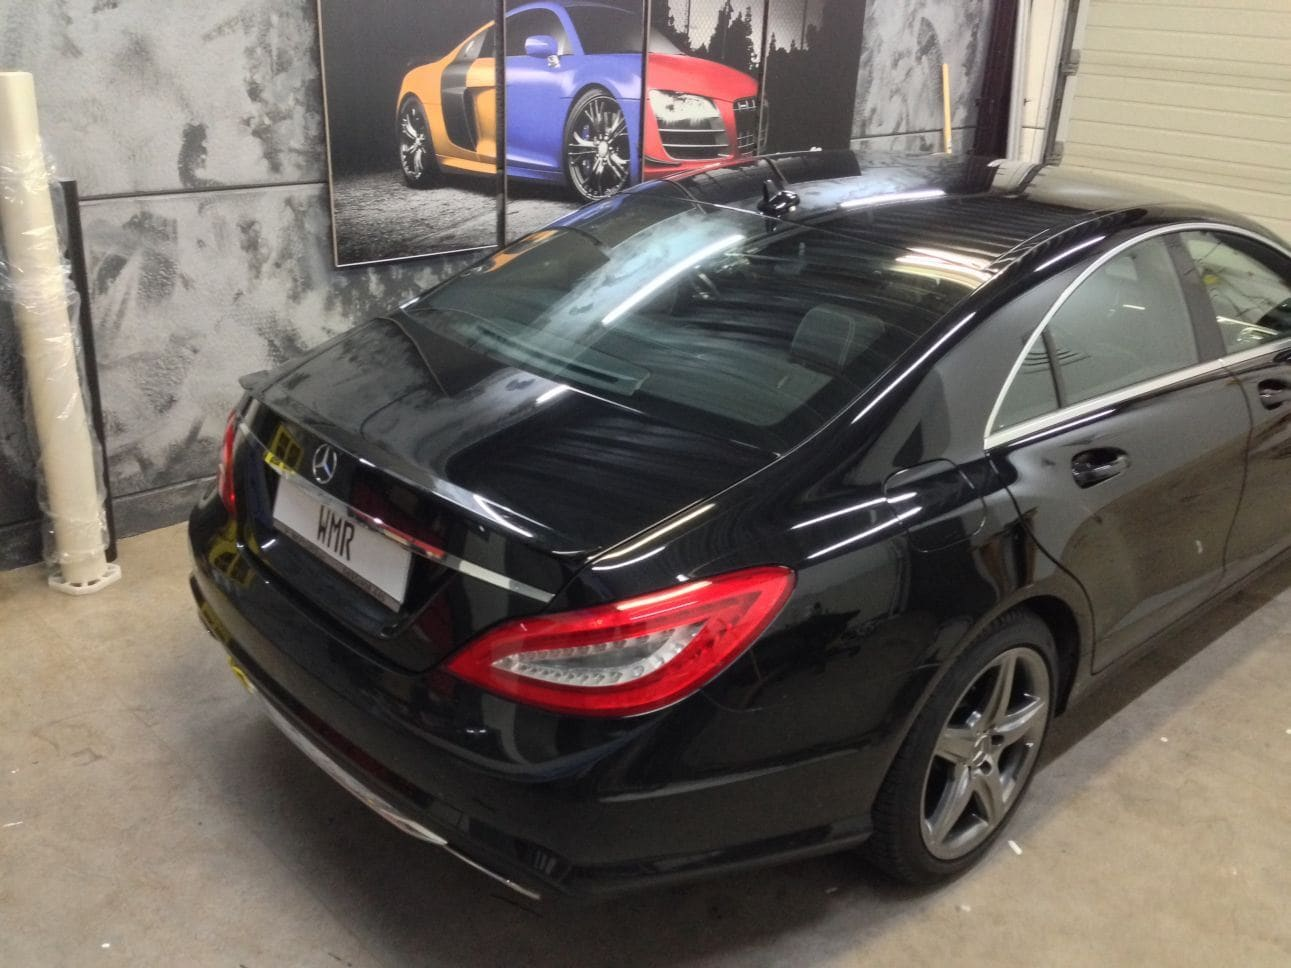 Mercedes CLS met White Satin Pearl Wrap, Carwrapping door Wrapmyride.nu Foto-nr:6175, ©2021